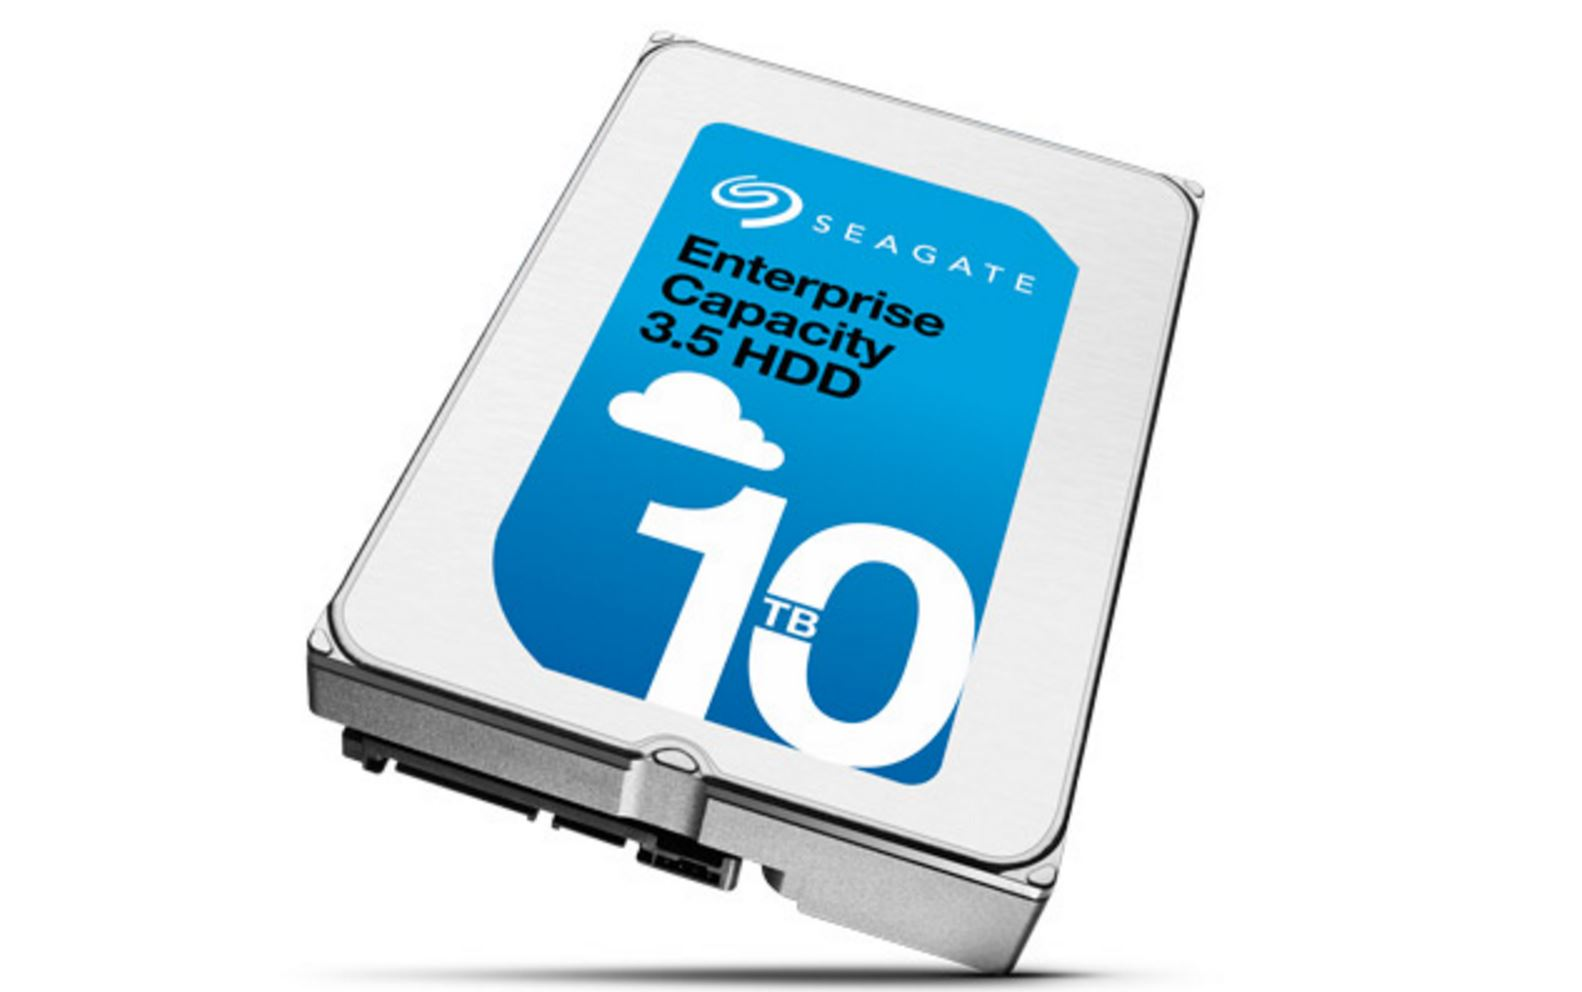 how to fix a seagate hard drive